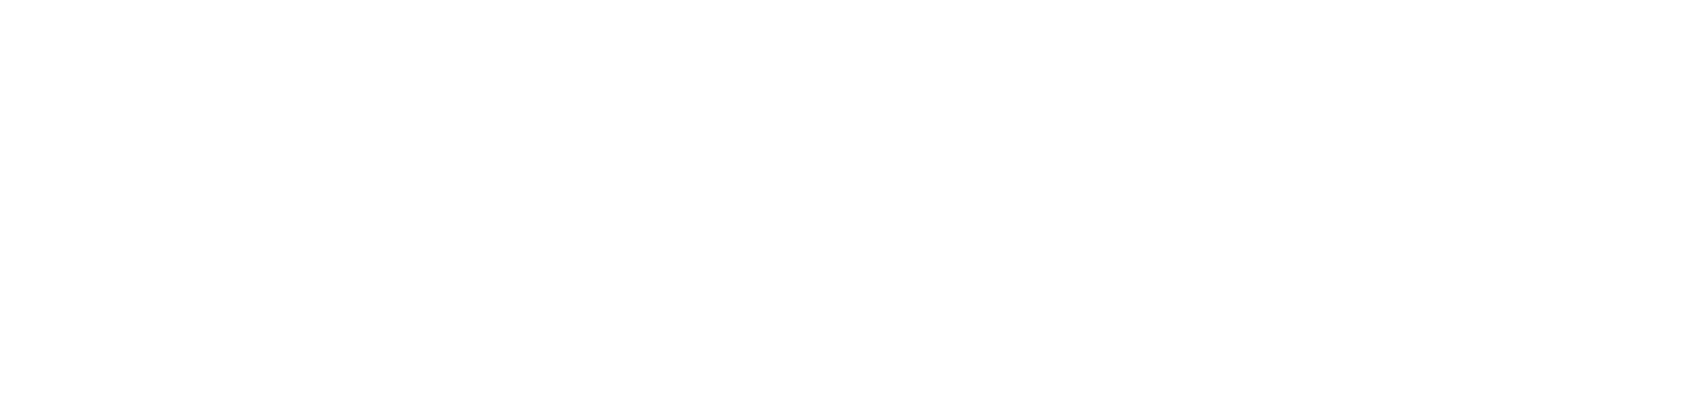 Submit and Idea or Request